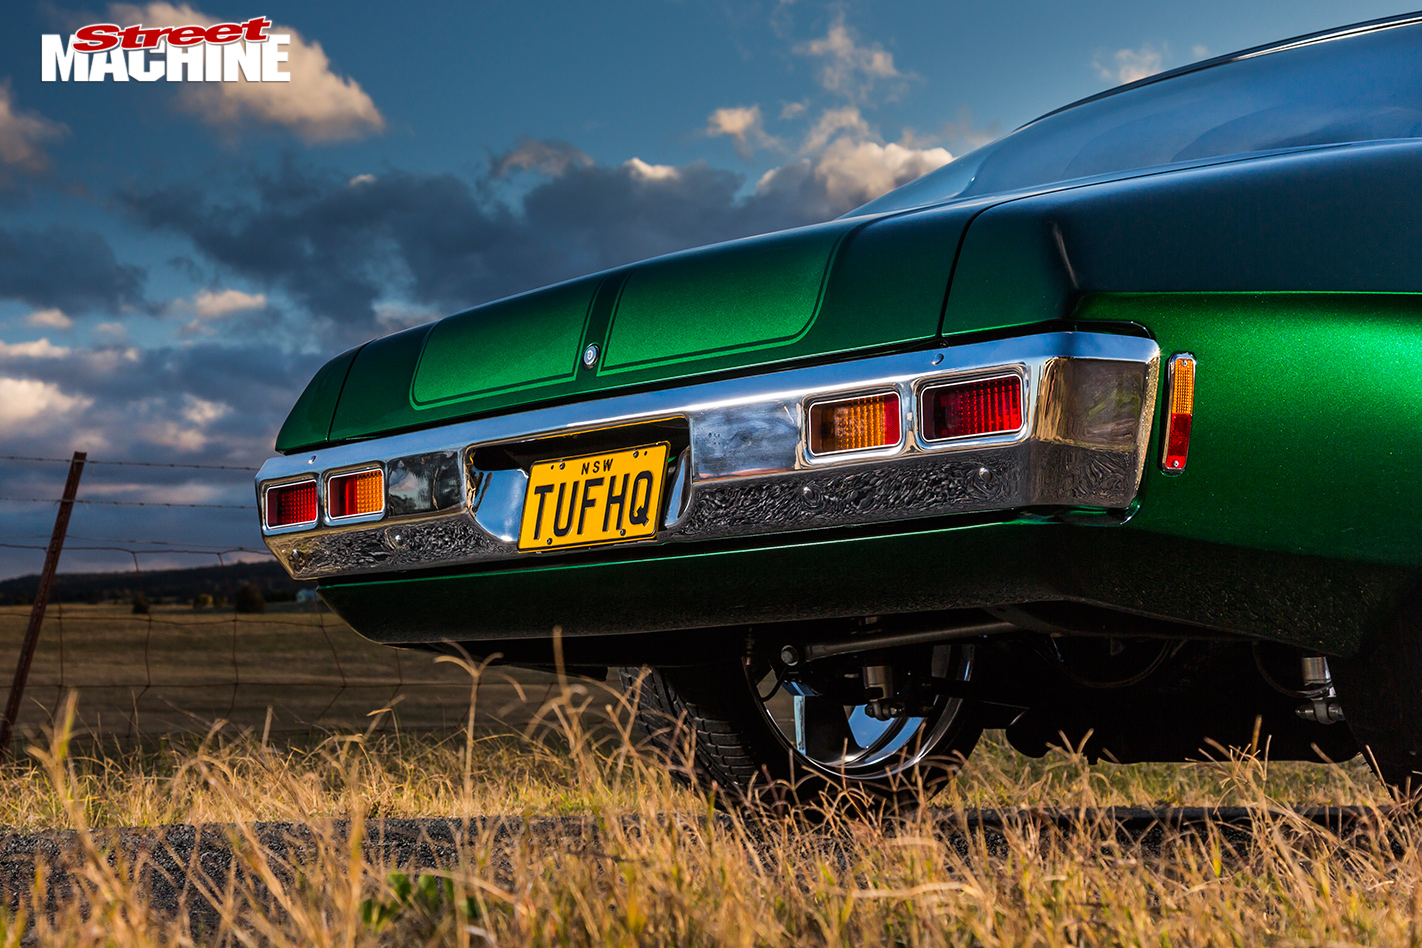 3816-holden -hq -TUFFHQ-taillights